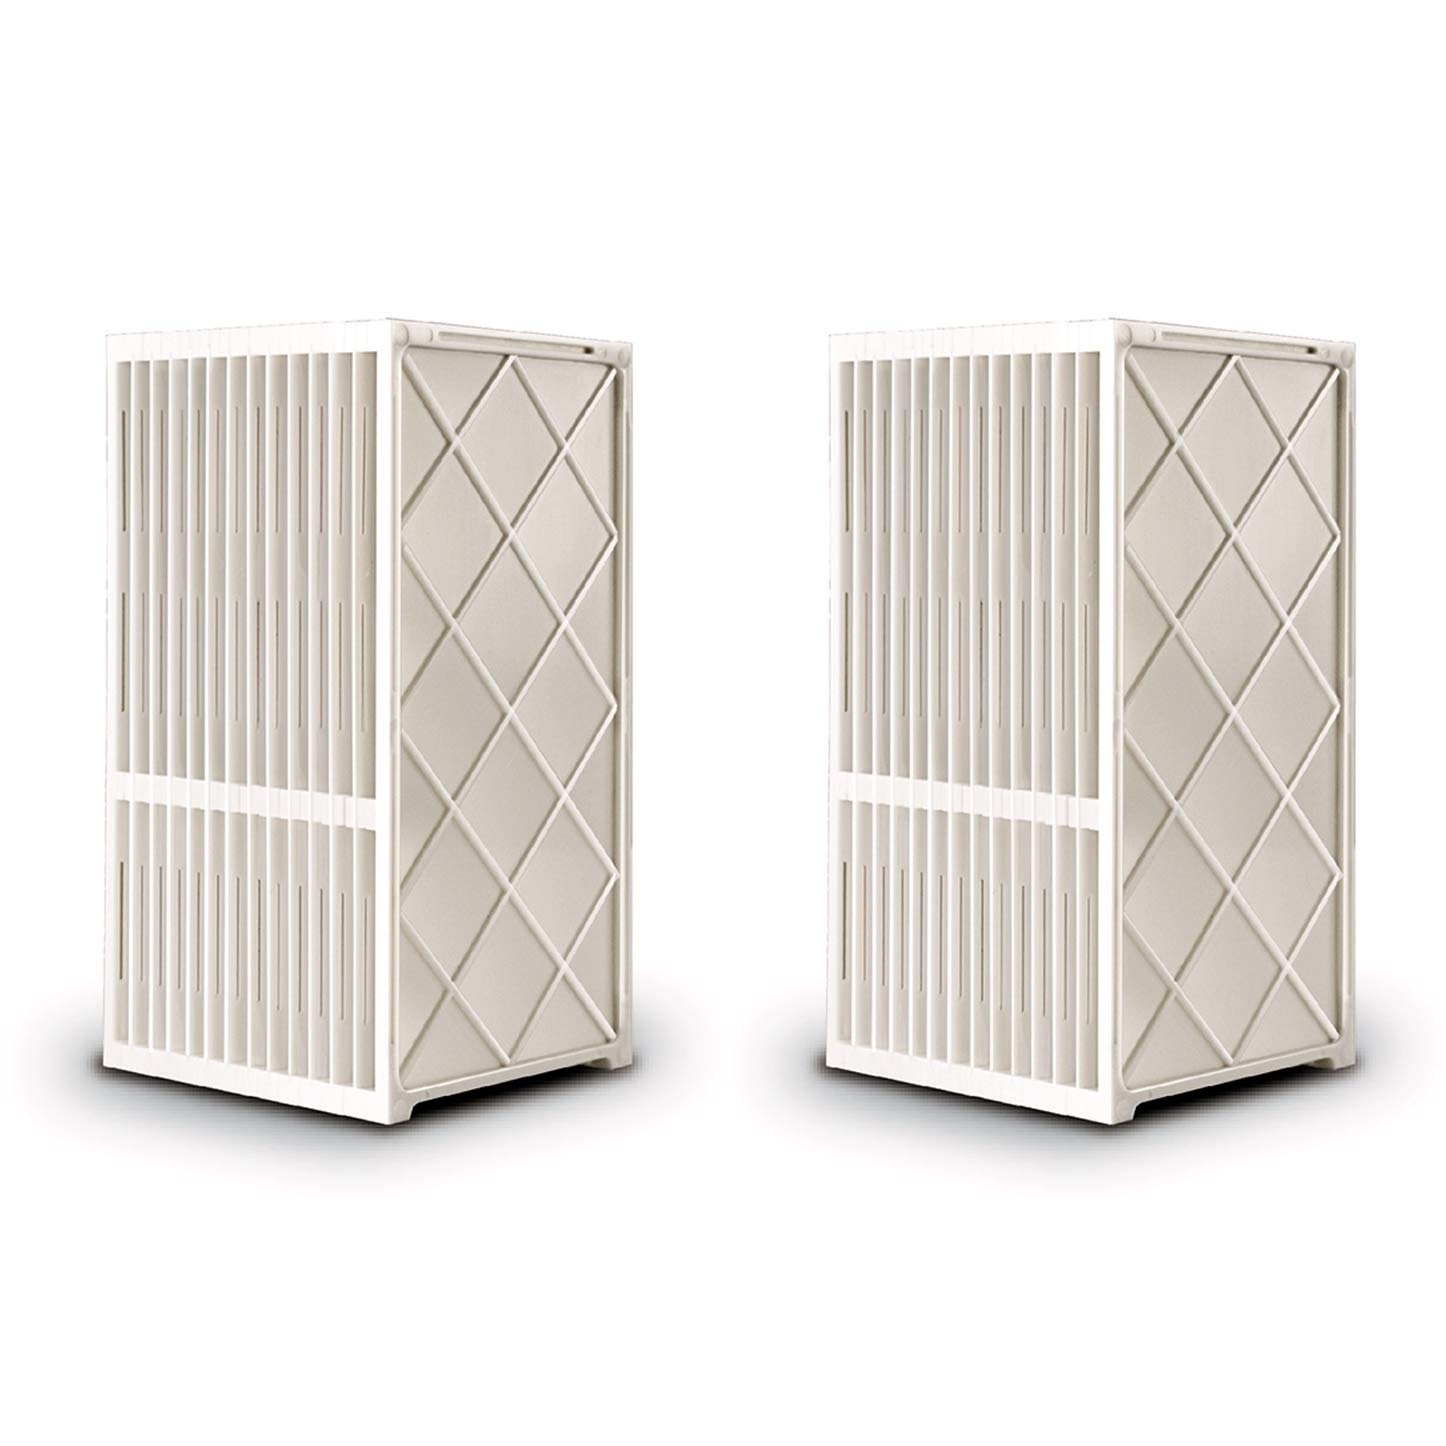 IDI Air Purifier Photocatalyst Nano Filters Suitable for Models AC-01X AC-01S AC-01 Air Cooler - 2 Pack